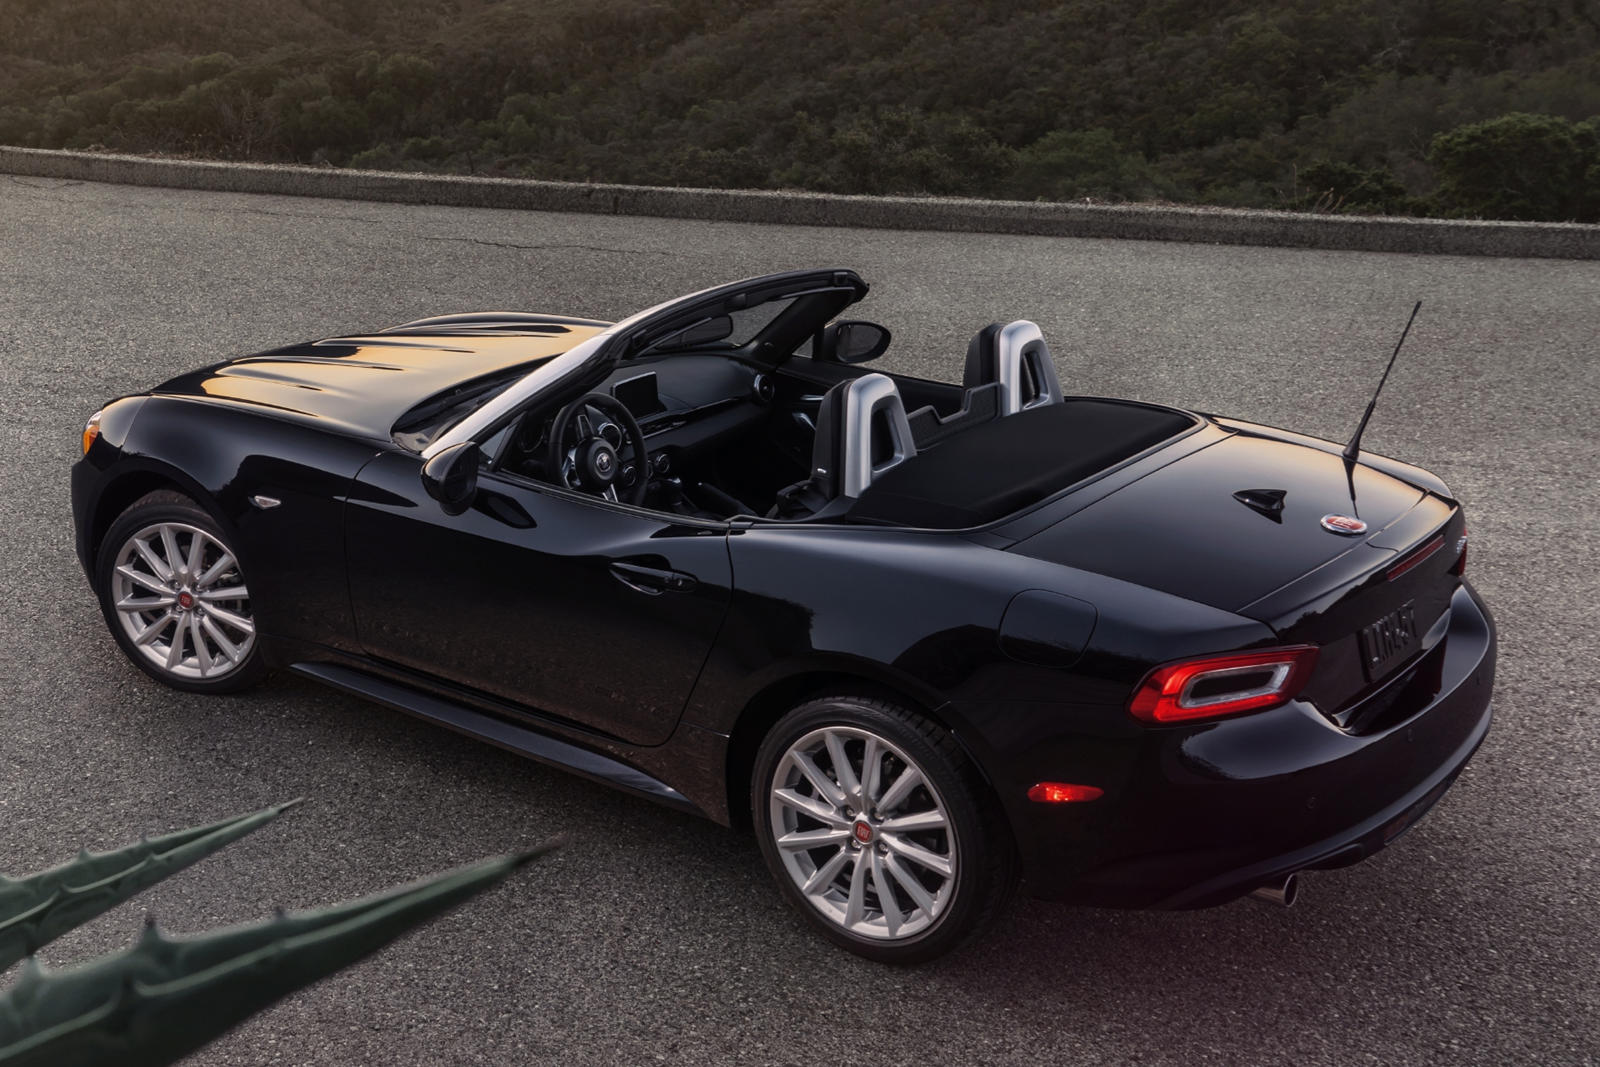 2020 Fiat 124 Spider Convertible Rear View